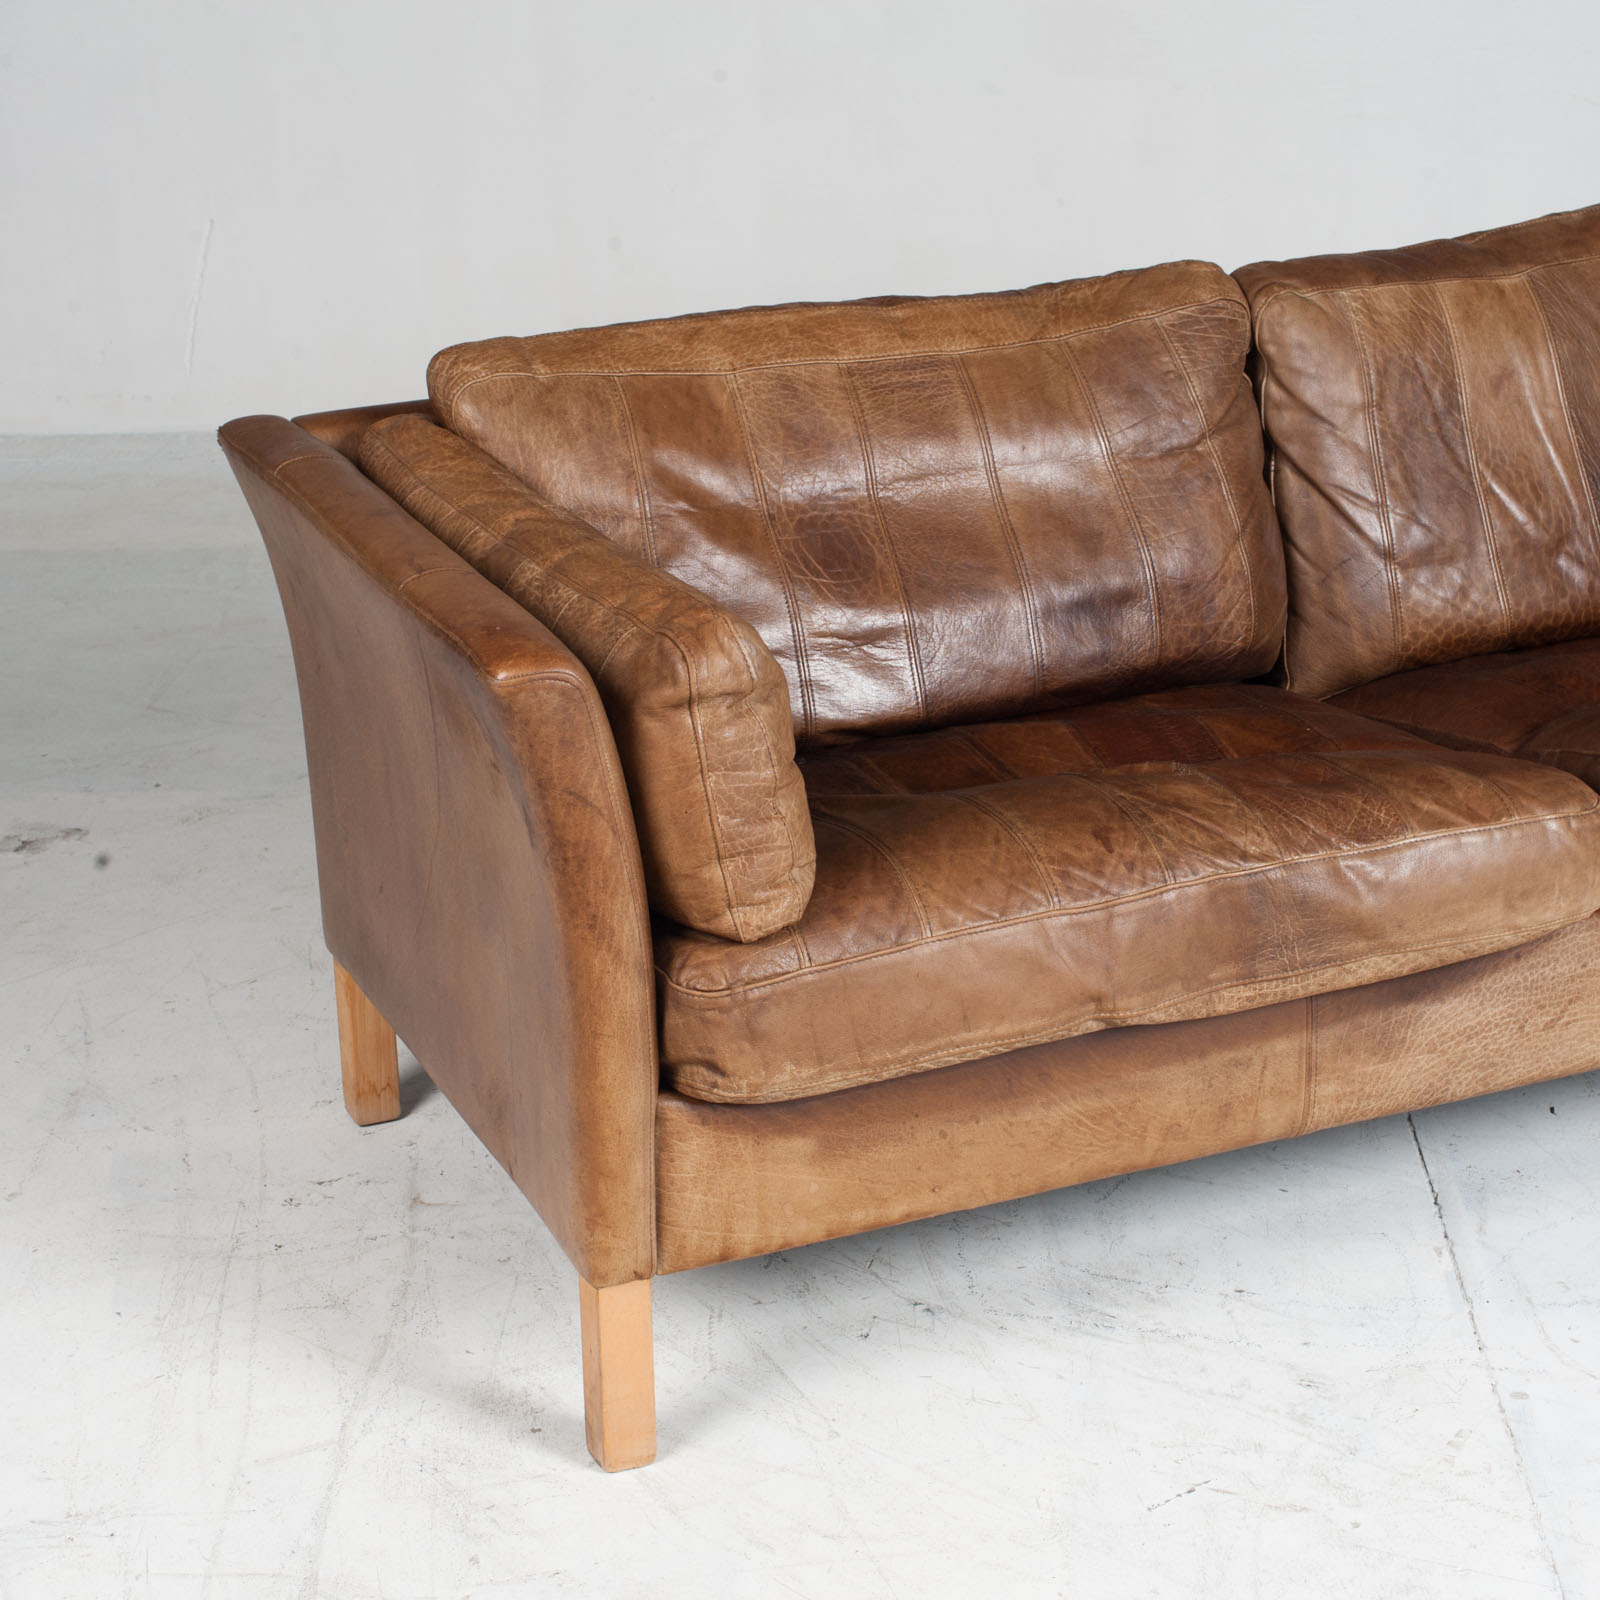 2.5 Seat Sofa In Tan Panelled Leather 1960s Denmark3